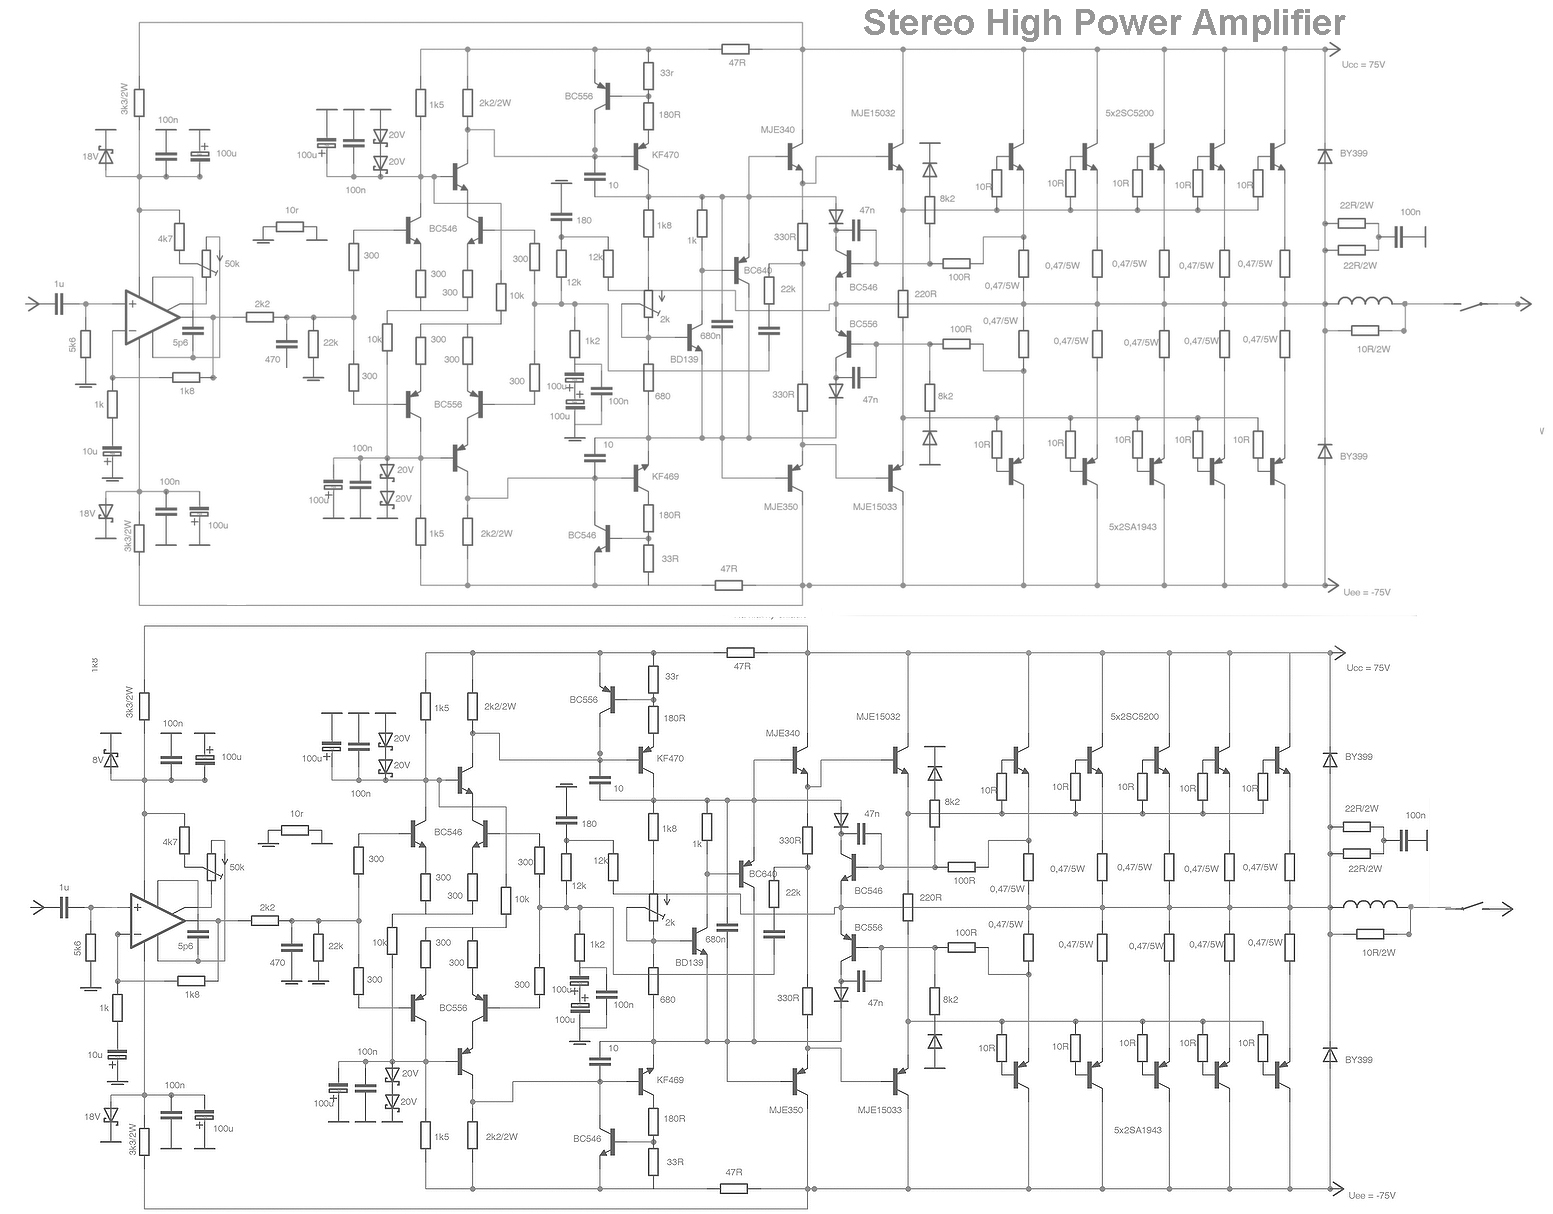 Results Page 9 About Ohm Searching Circuits At Tda2002 8w Car Radio Power Amplifier Stereo High Audio Amplifierhtml